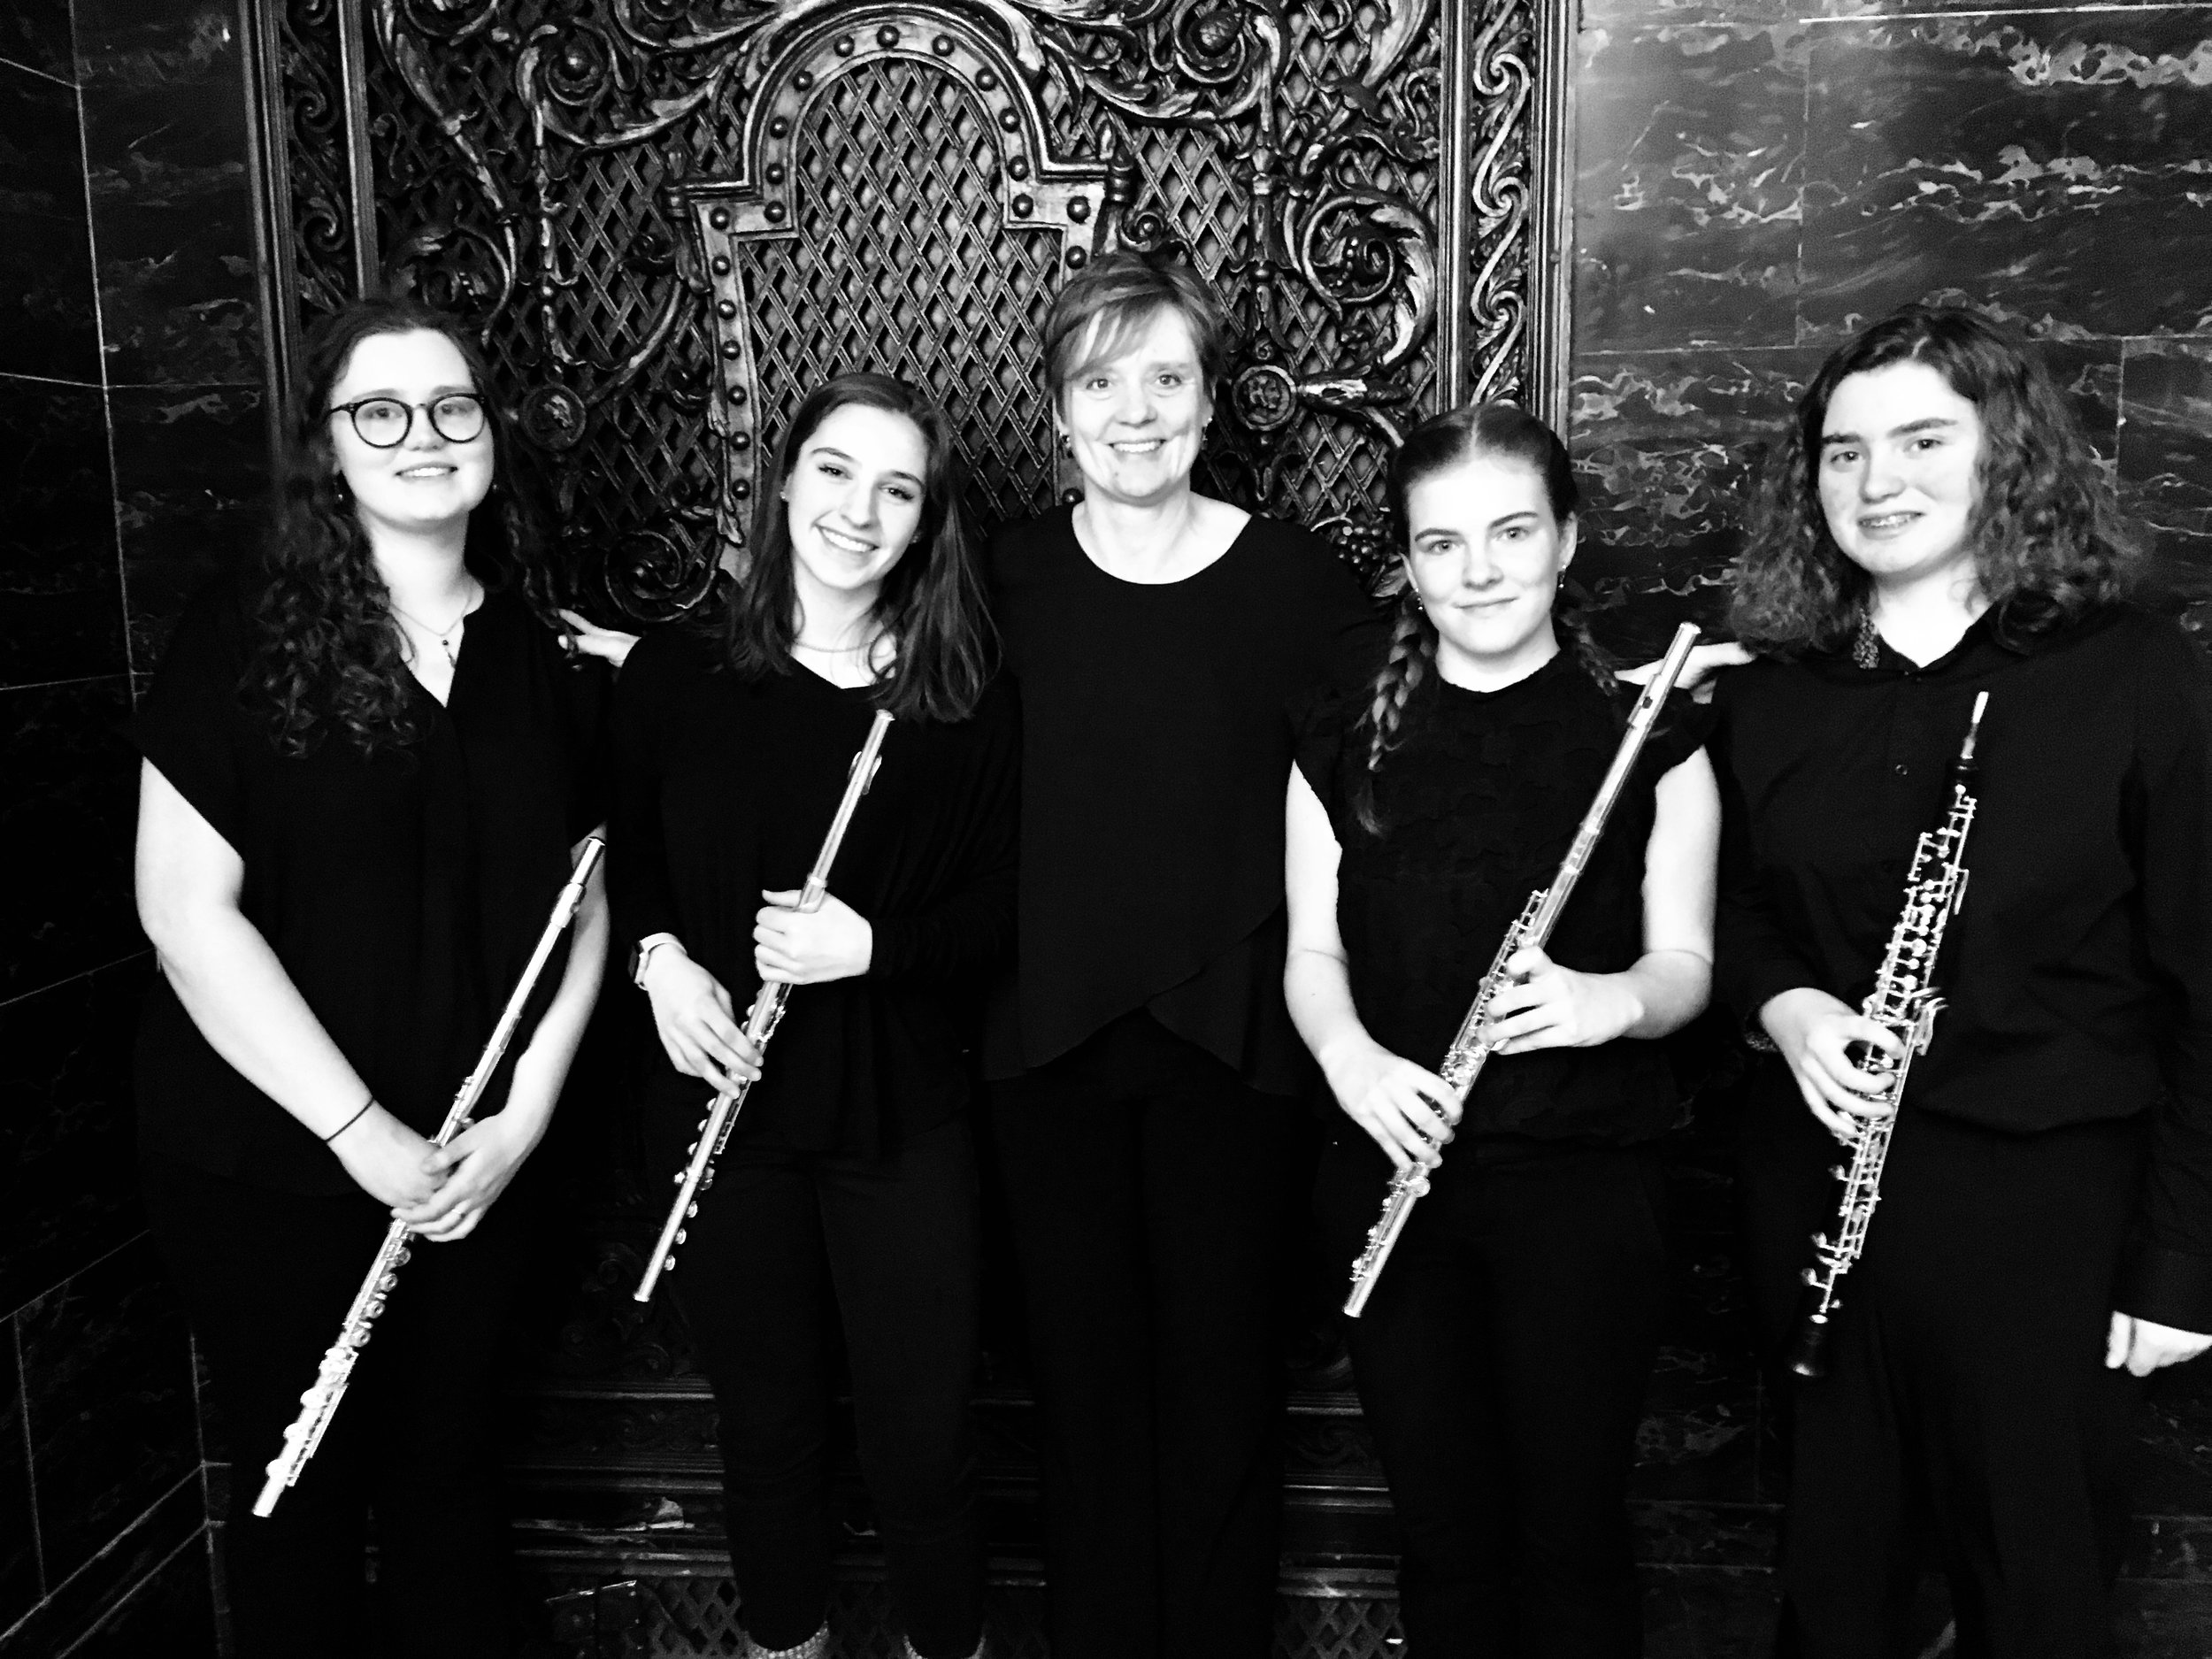 Kookaburra at Heinz Hall - March 24, 2019PSO Principal Piccolo Rhian Kenny posed with the members of the chamber group she coached this year, the Kookaburra Quartet - Emily, Zoe, Avery, and Becky. They performed in the lobby of Heinz Hall to greet symphony-goers on Sunday afternoon.